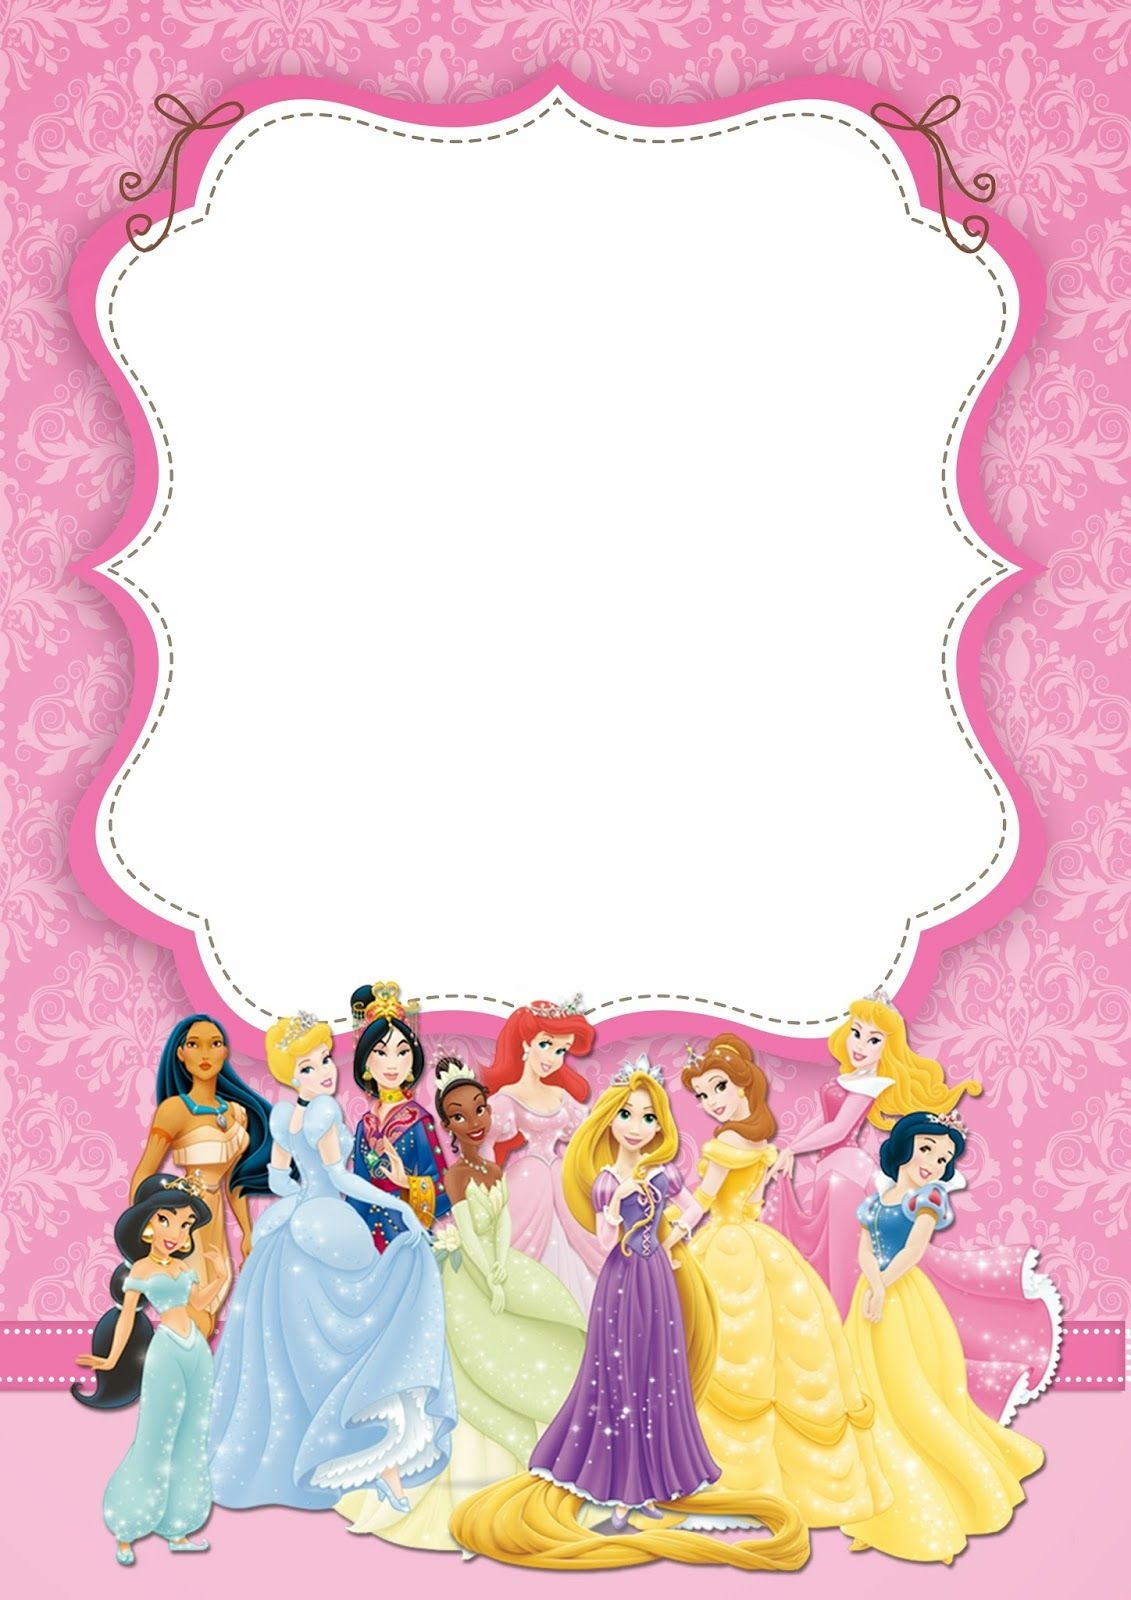 Free Printable Disney Princess Ticket Invitation | Free Printable - Free Printable Disney Invitations